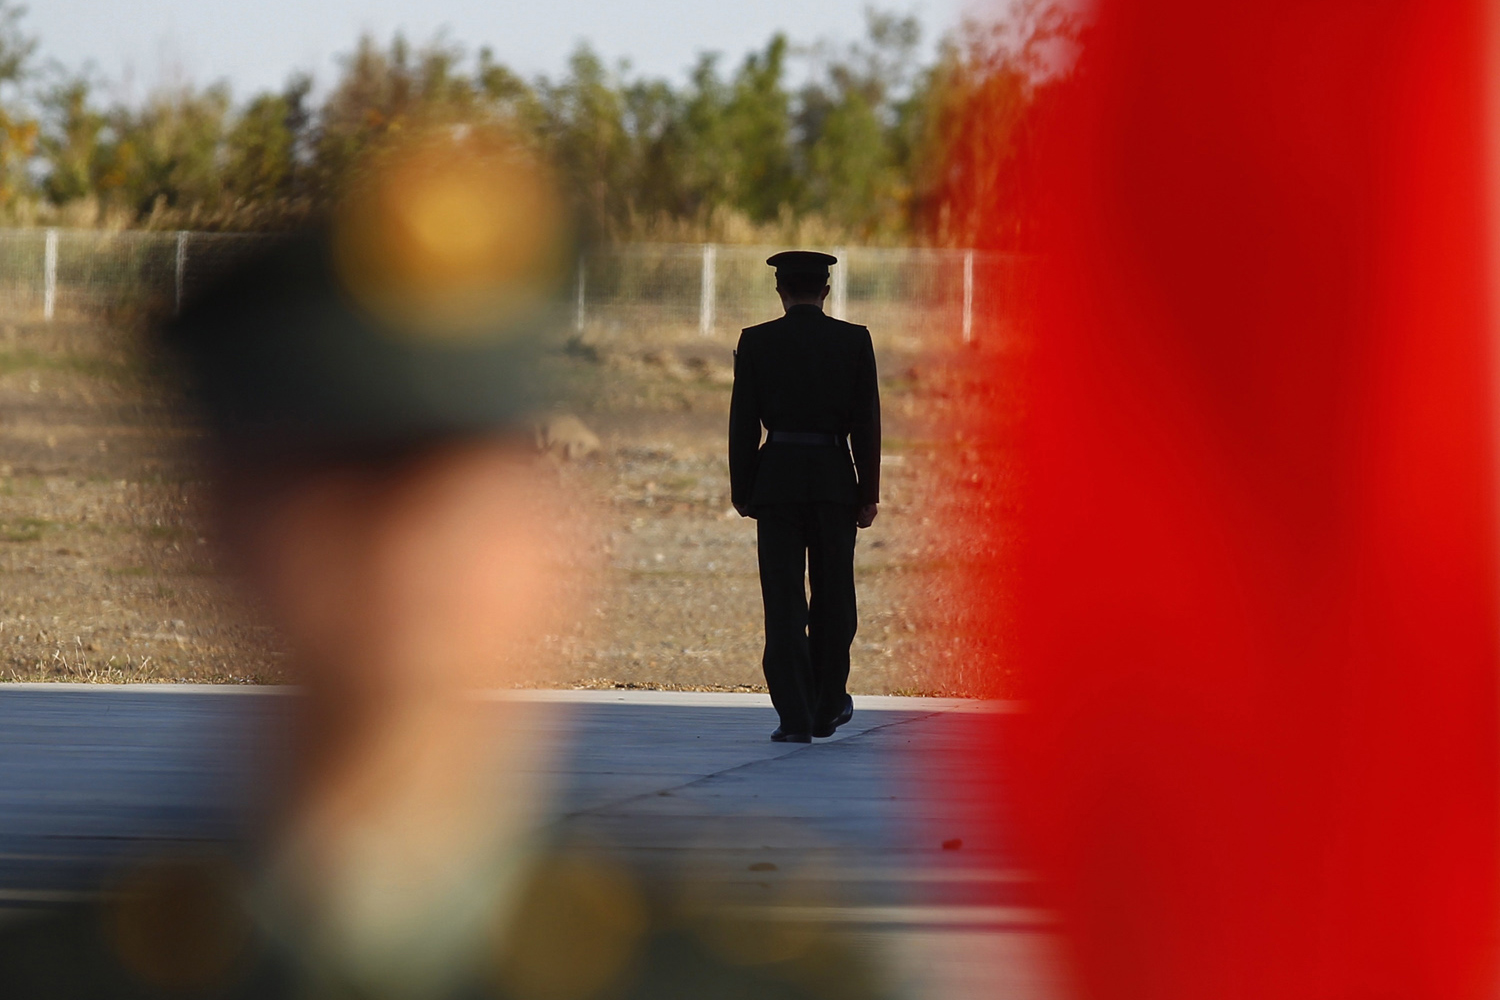 September 28, 2011. Chinese soldiers guard Long March II-F rocket loaded with China's unmanned space module Tiangong-1 (not in the picture) at the launch pad in the Jiuquan Satellite Launch Center, Gansu province, China. China will launch an experimental craft paving the way for its first space station, bringing the growing Asian power closer to matching the United States and Russia with a long-term manned outpost in space.